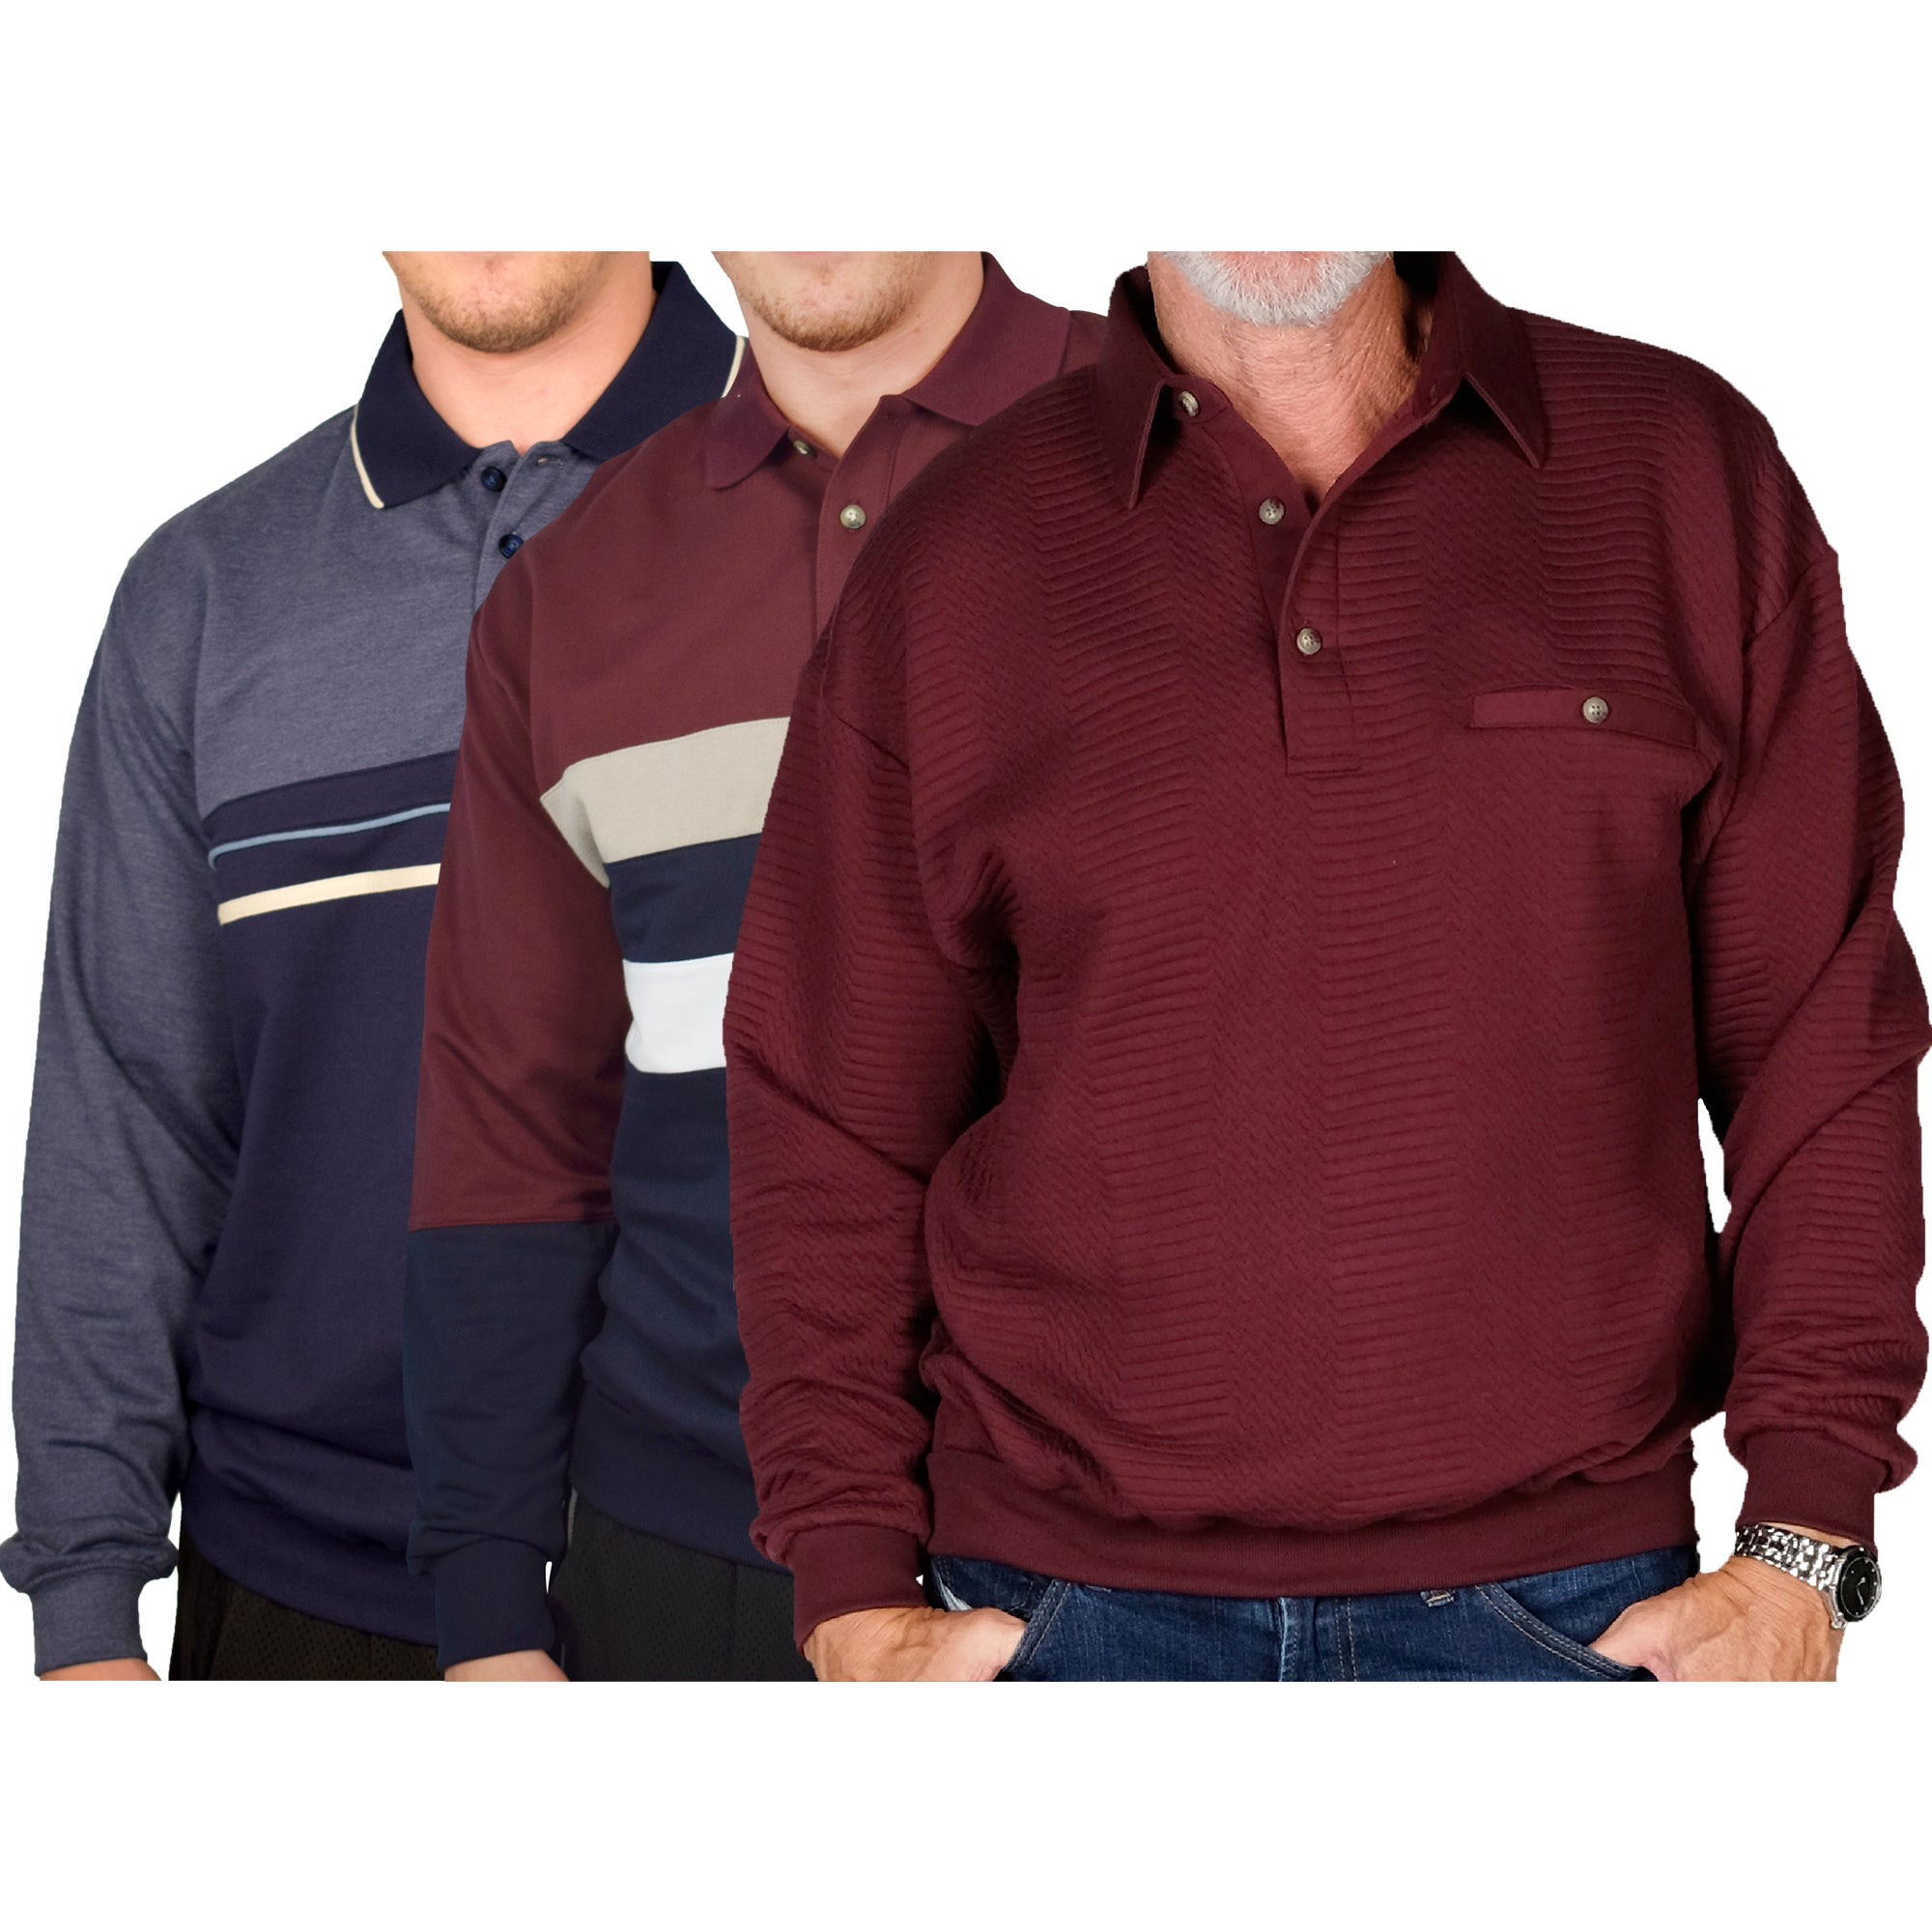 Classics Mix - 3 Long Sleeve Shirts Bundled